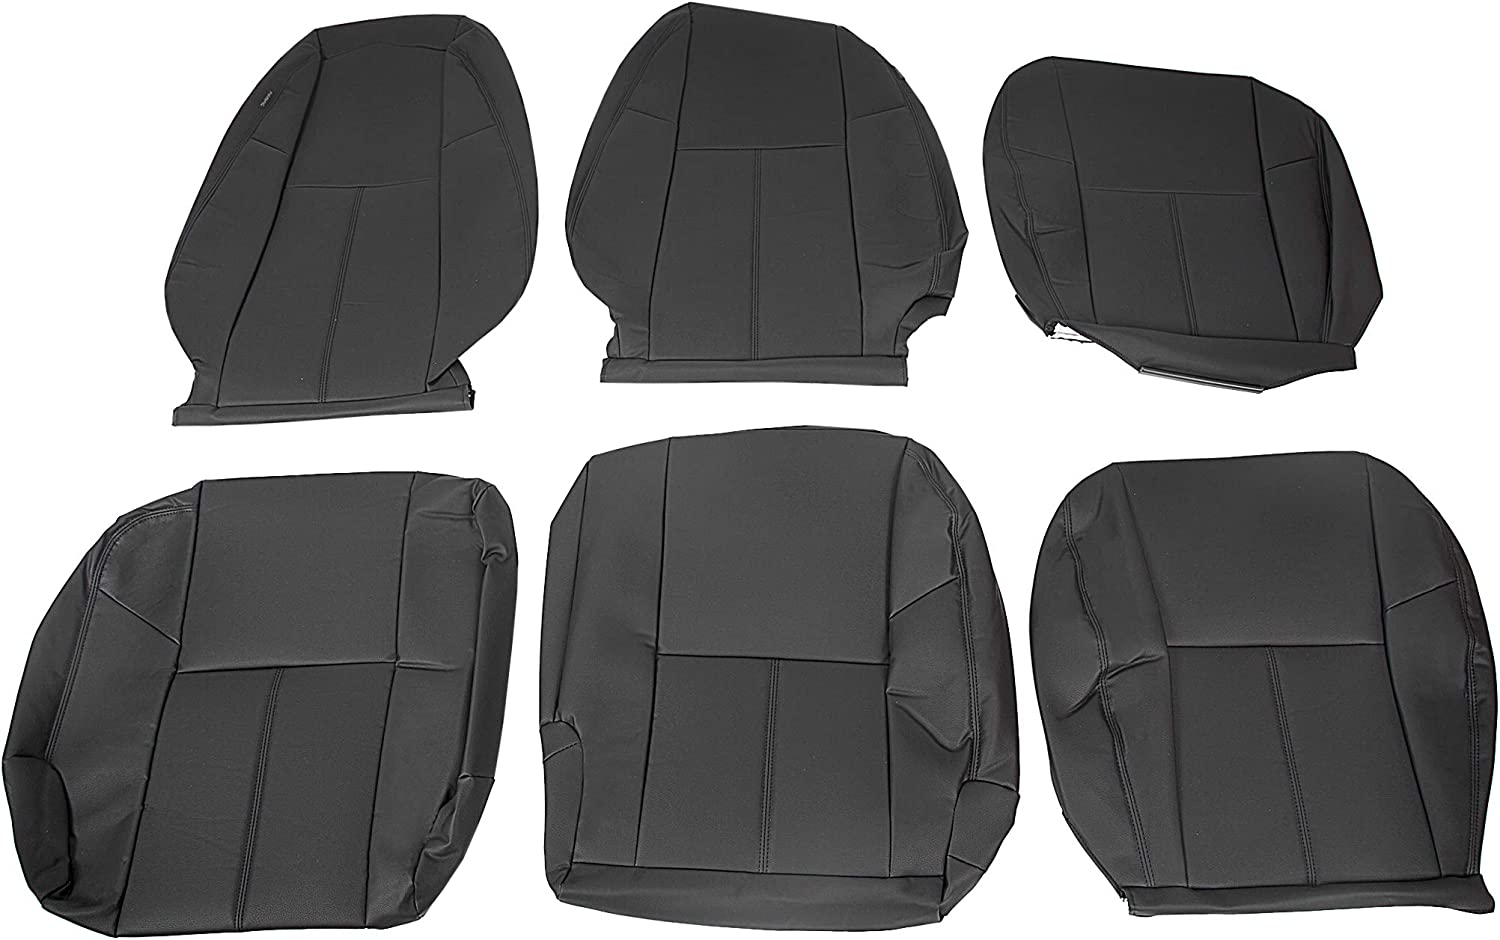 service ECOTRIC Synthetic Leather Seat Covers Kit with outlet Compatible Black